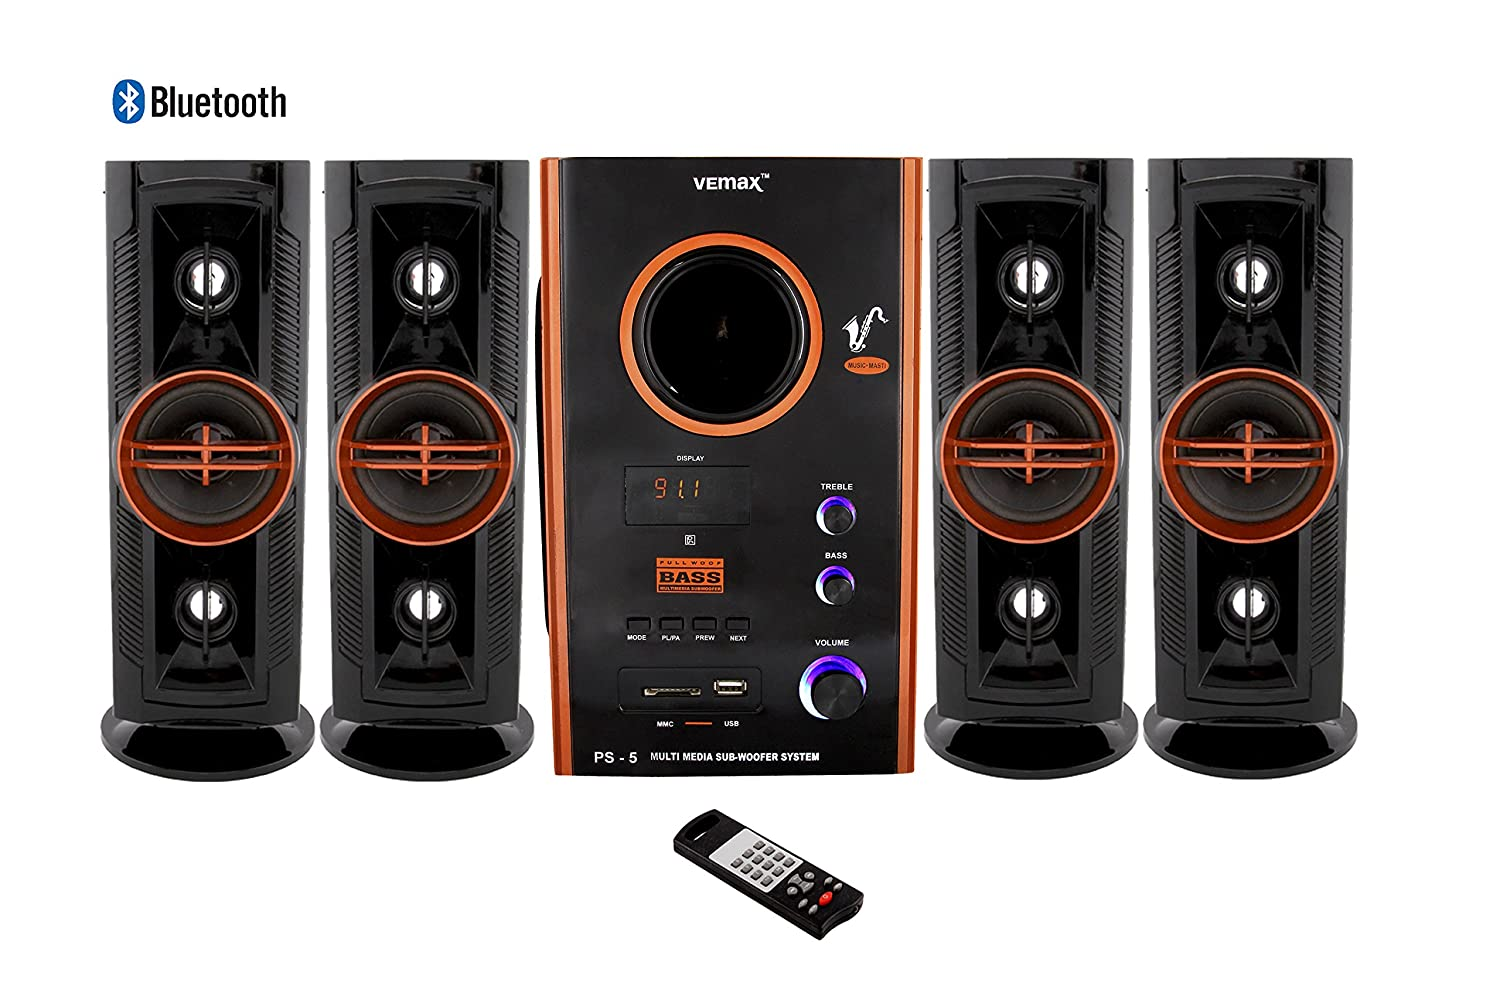 Vemax Eiffel Bluetooth 6 50 inch woofer with 25000w PMPO Hi Bass Surround  Sound System and Tower Speakers (Black & Copper)